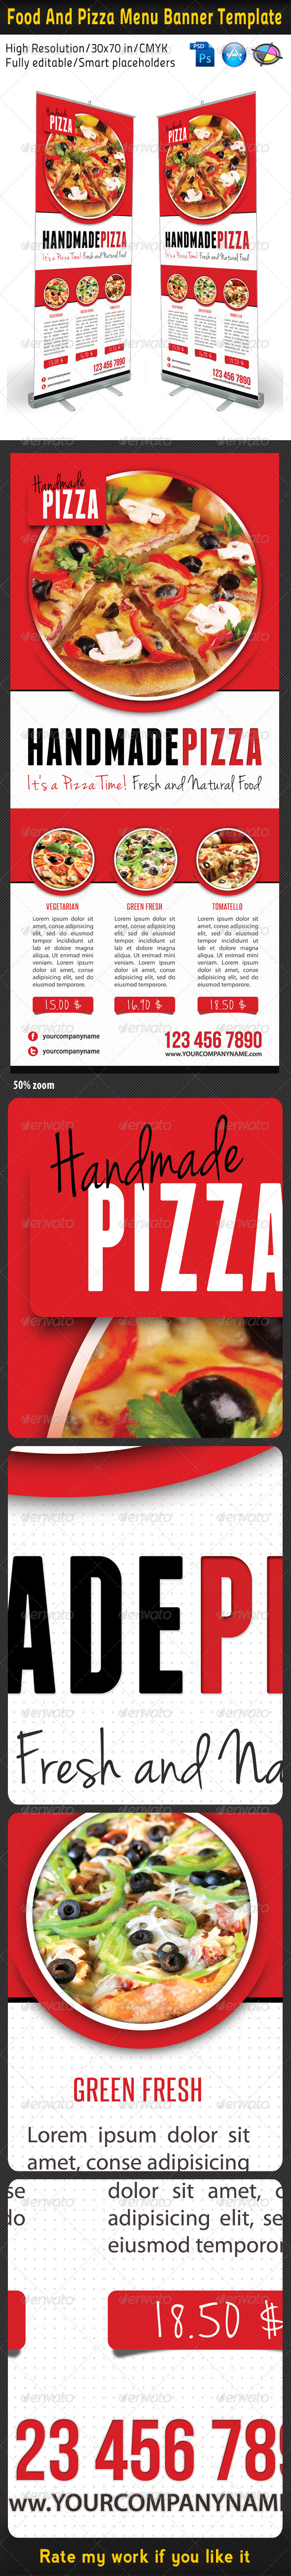 Food And Pizza Menu Banner Template 01 - Signage Print Templates